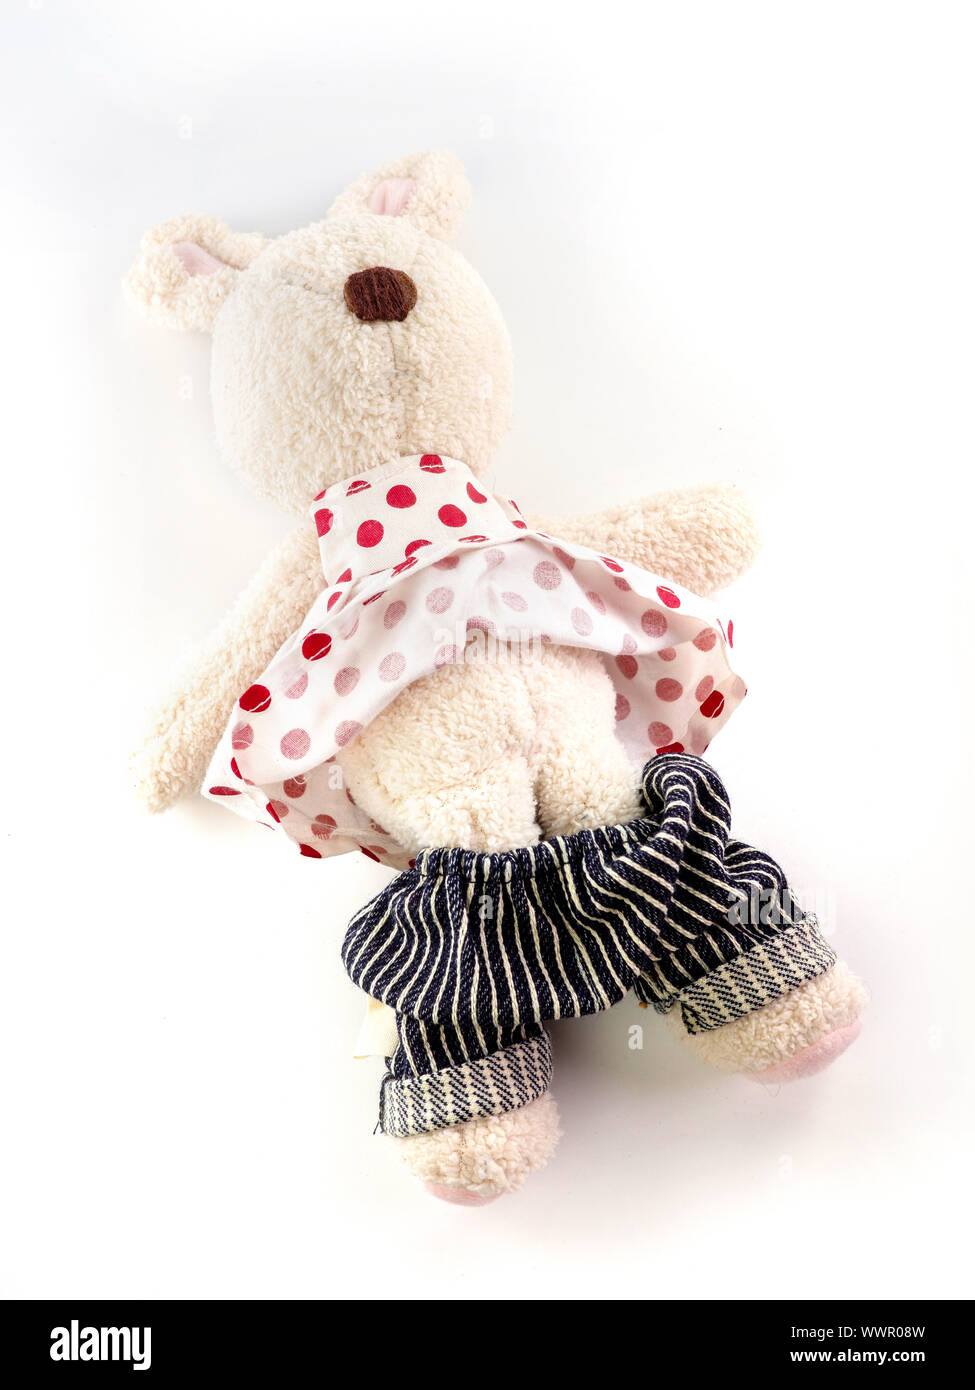 Rabbit doll that was stripped of clothes on white background. statutory rape concept Stock Photo